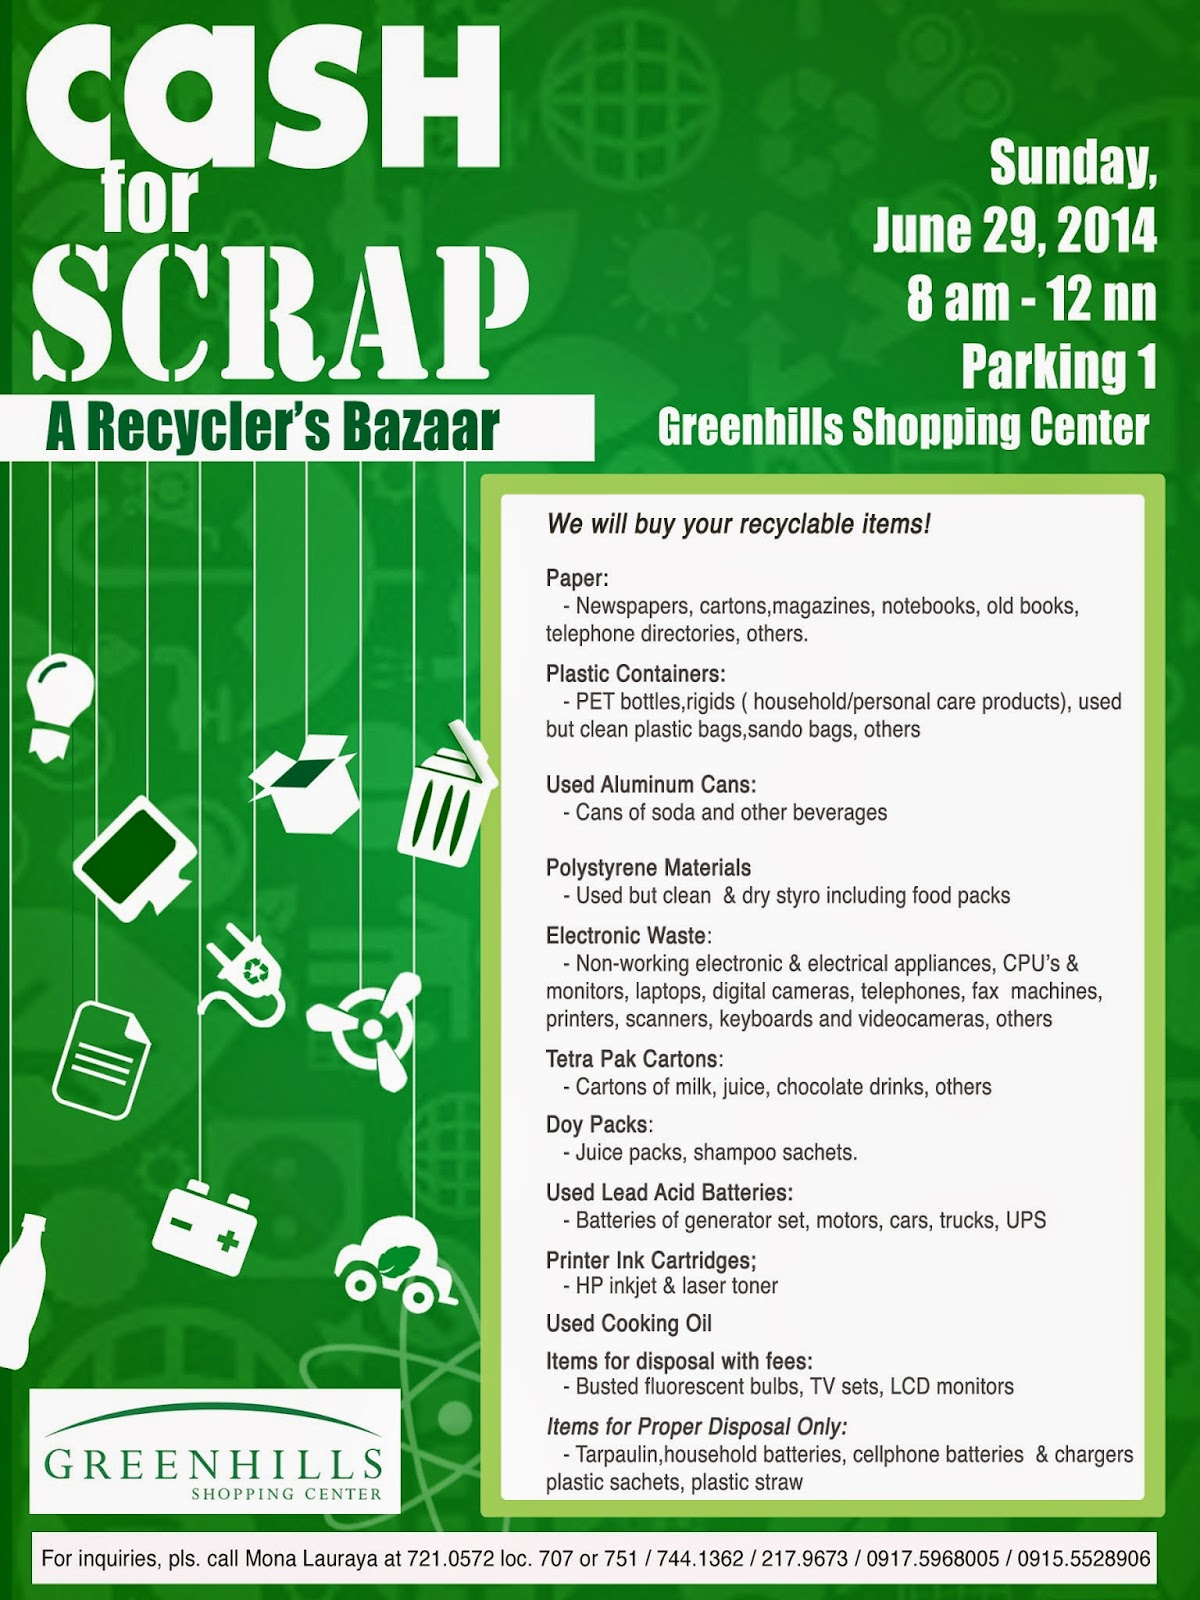 Cash for Scrap: A Recyclers' Bazaar